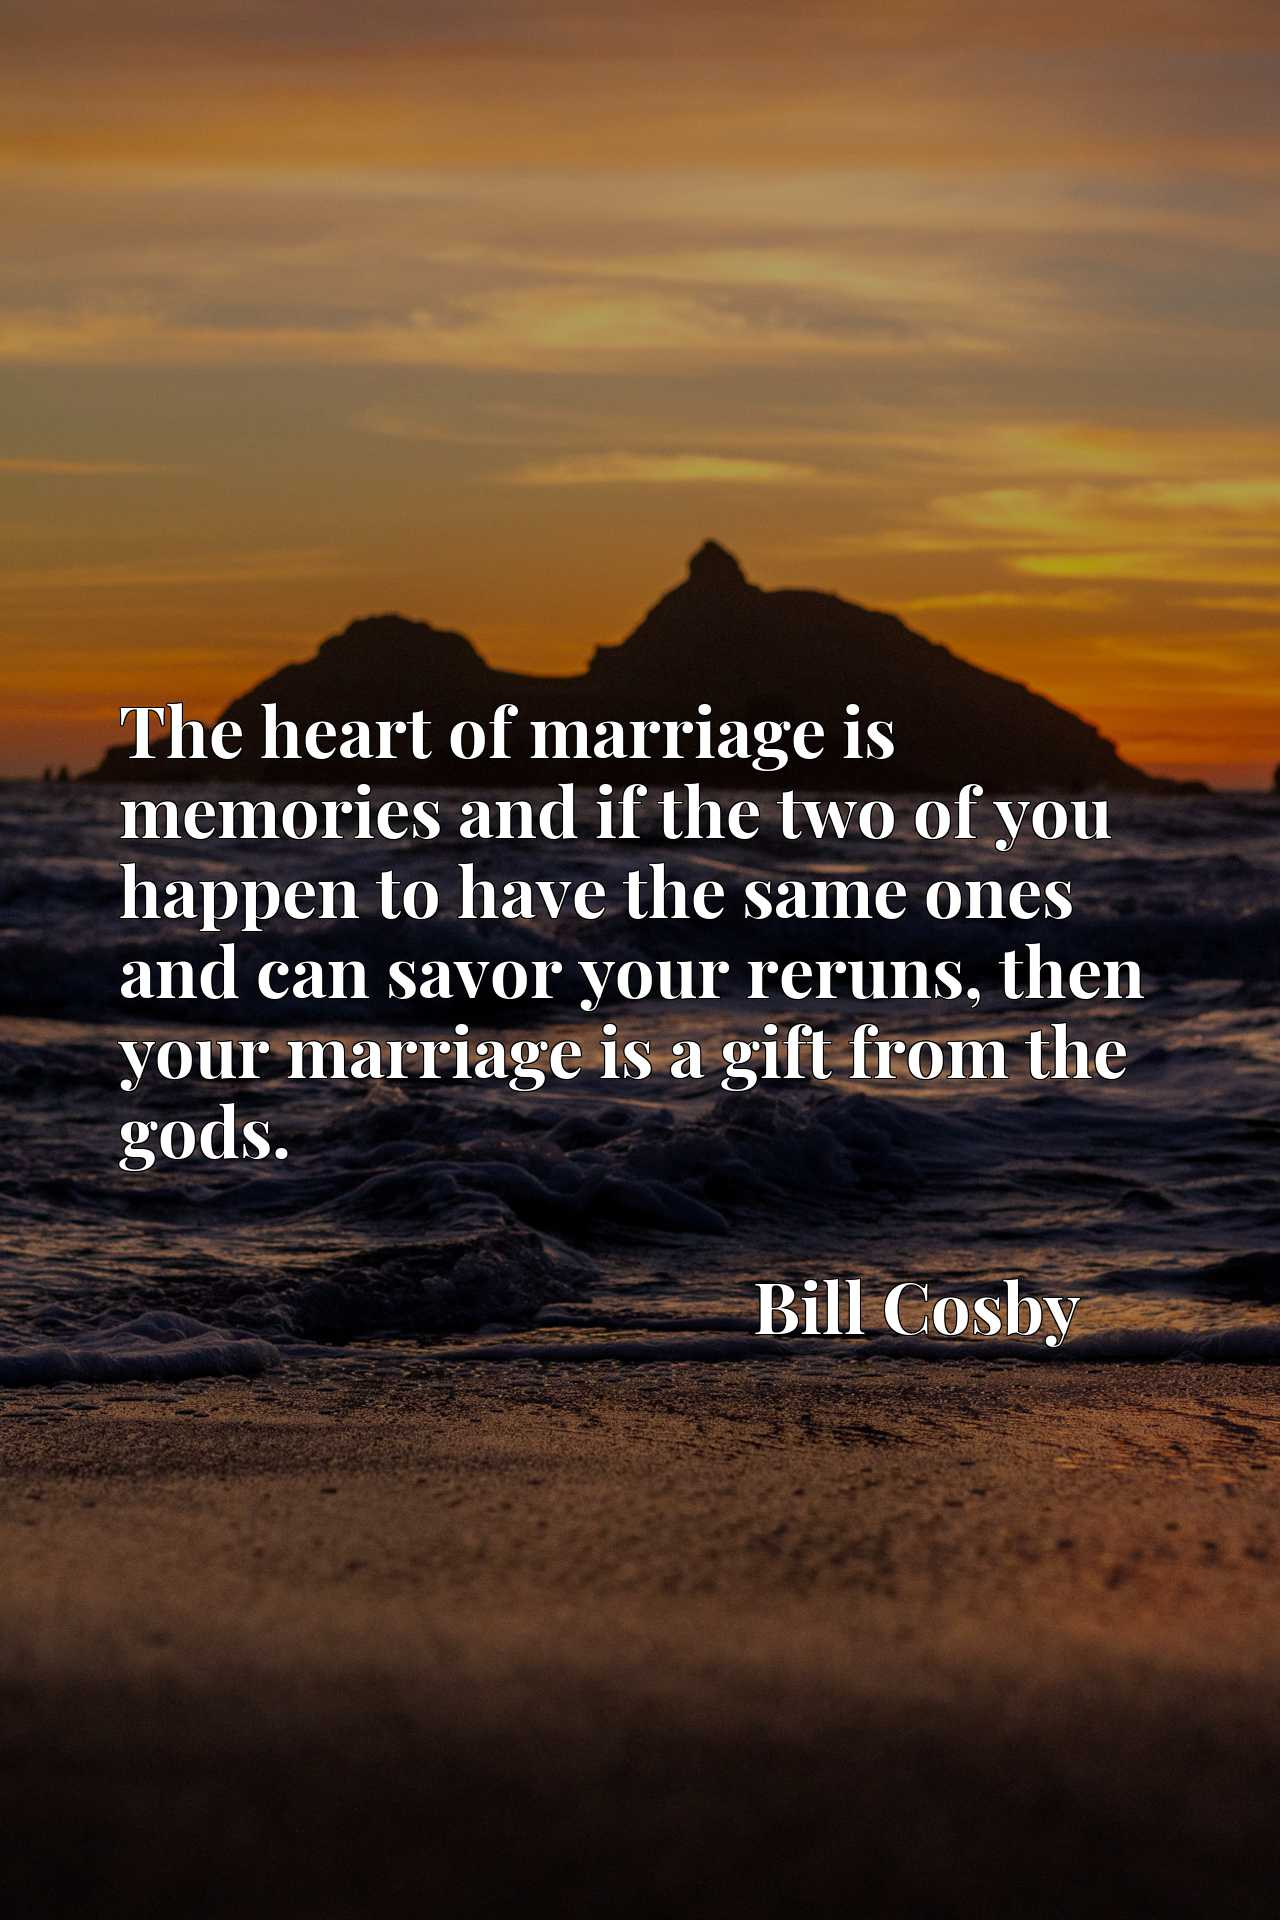 Quote Picture :The heart of marriage is memories and if the two of you happen to have the same ones and can savor your reruns, then your marriage is a gift from the gods.